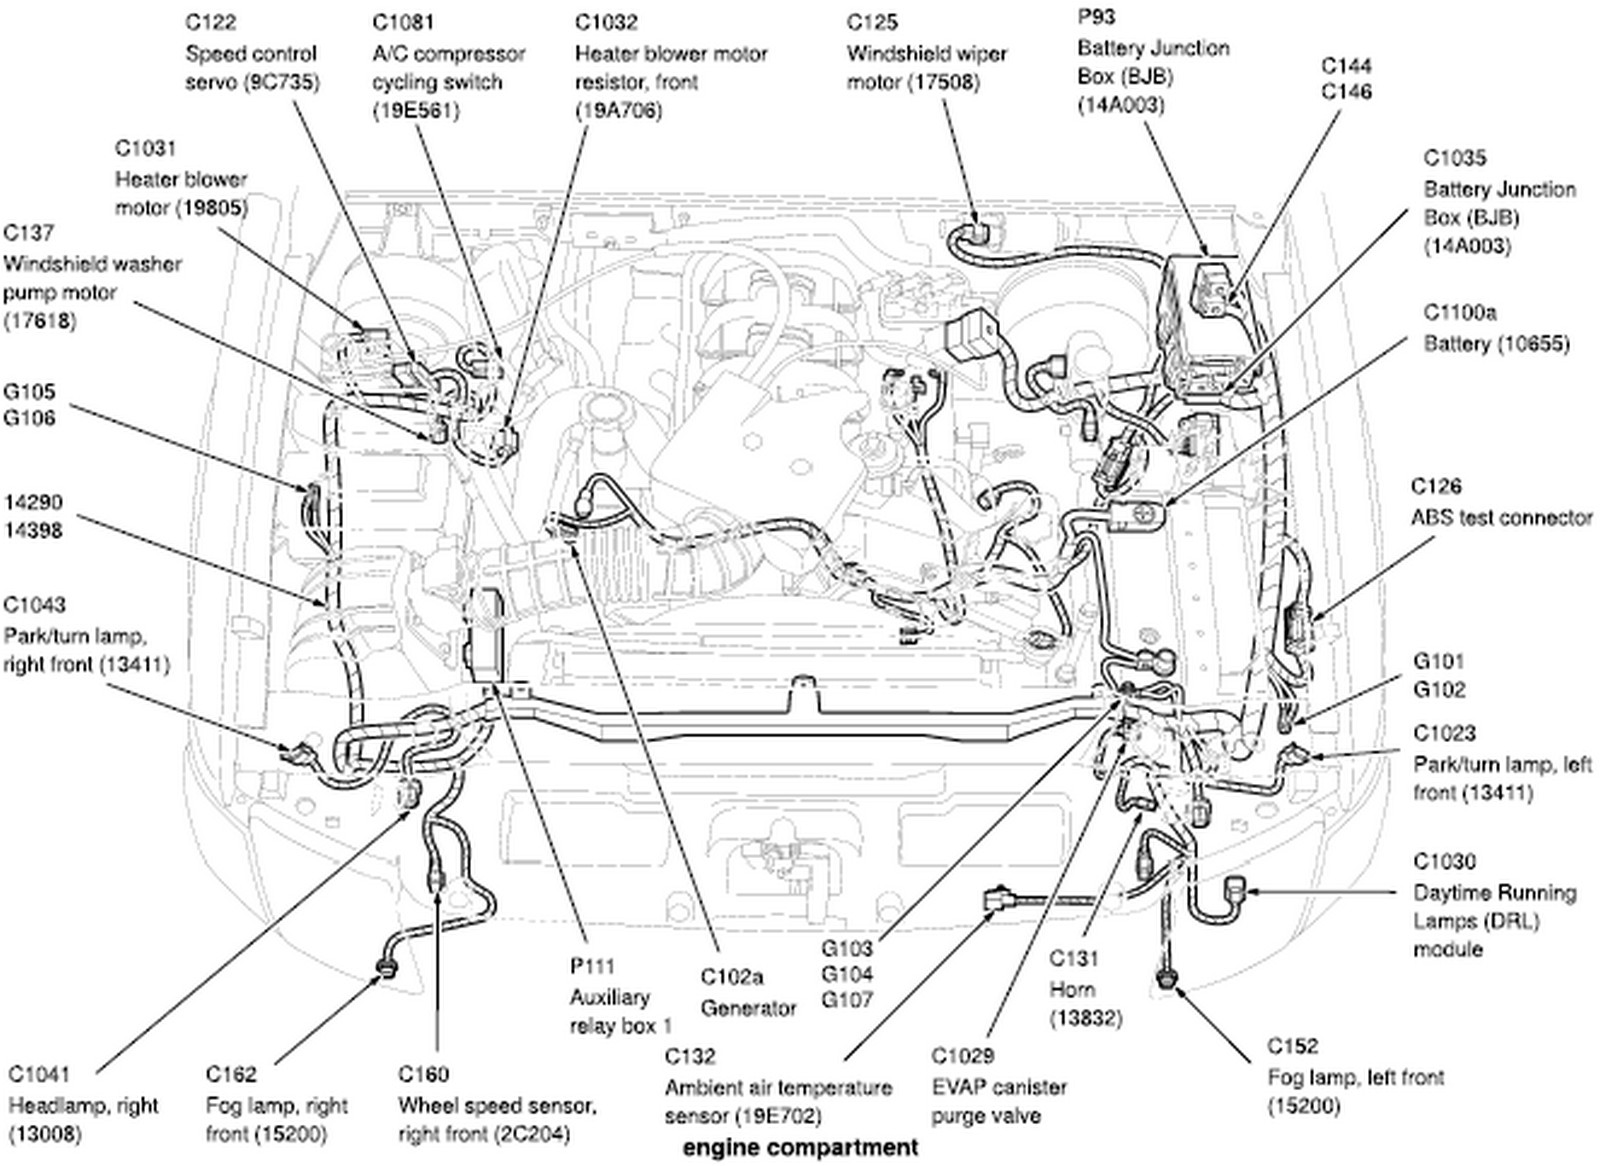 ford 4l ohv engine diagram - 2003 pontiac abs wiring diagram free download  - source-auto4.pas-sayange.jeanjaures37.fr  wiring diagram resource